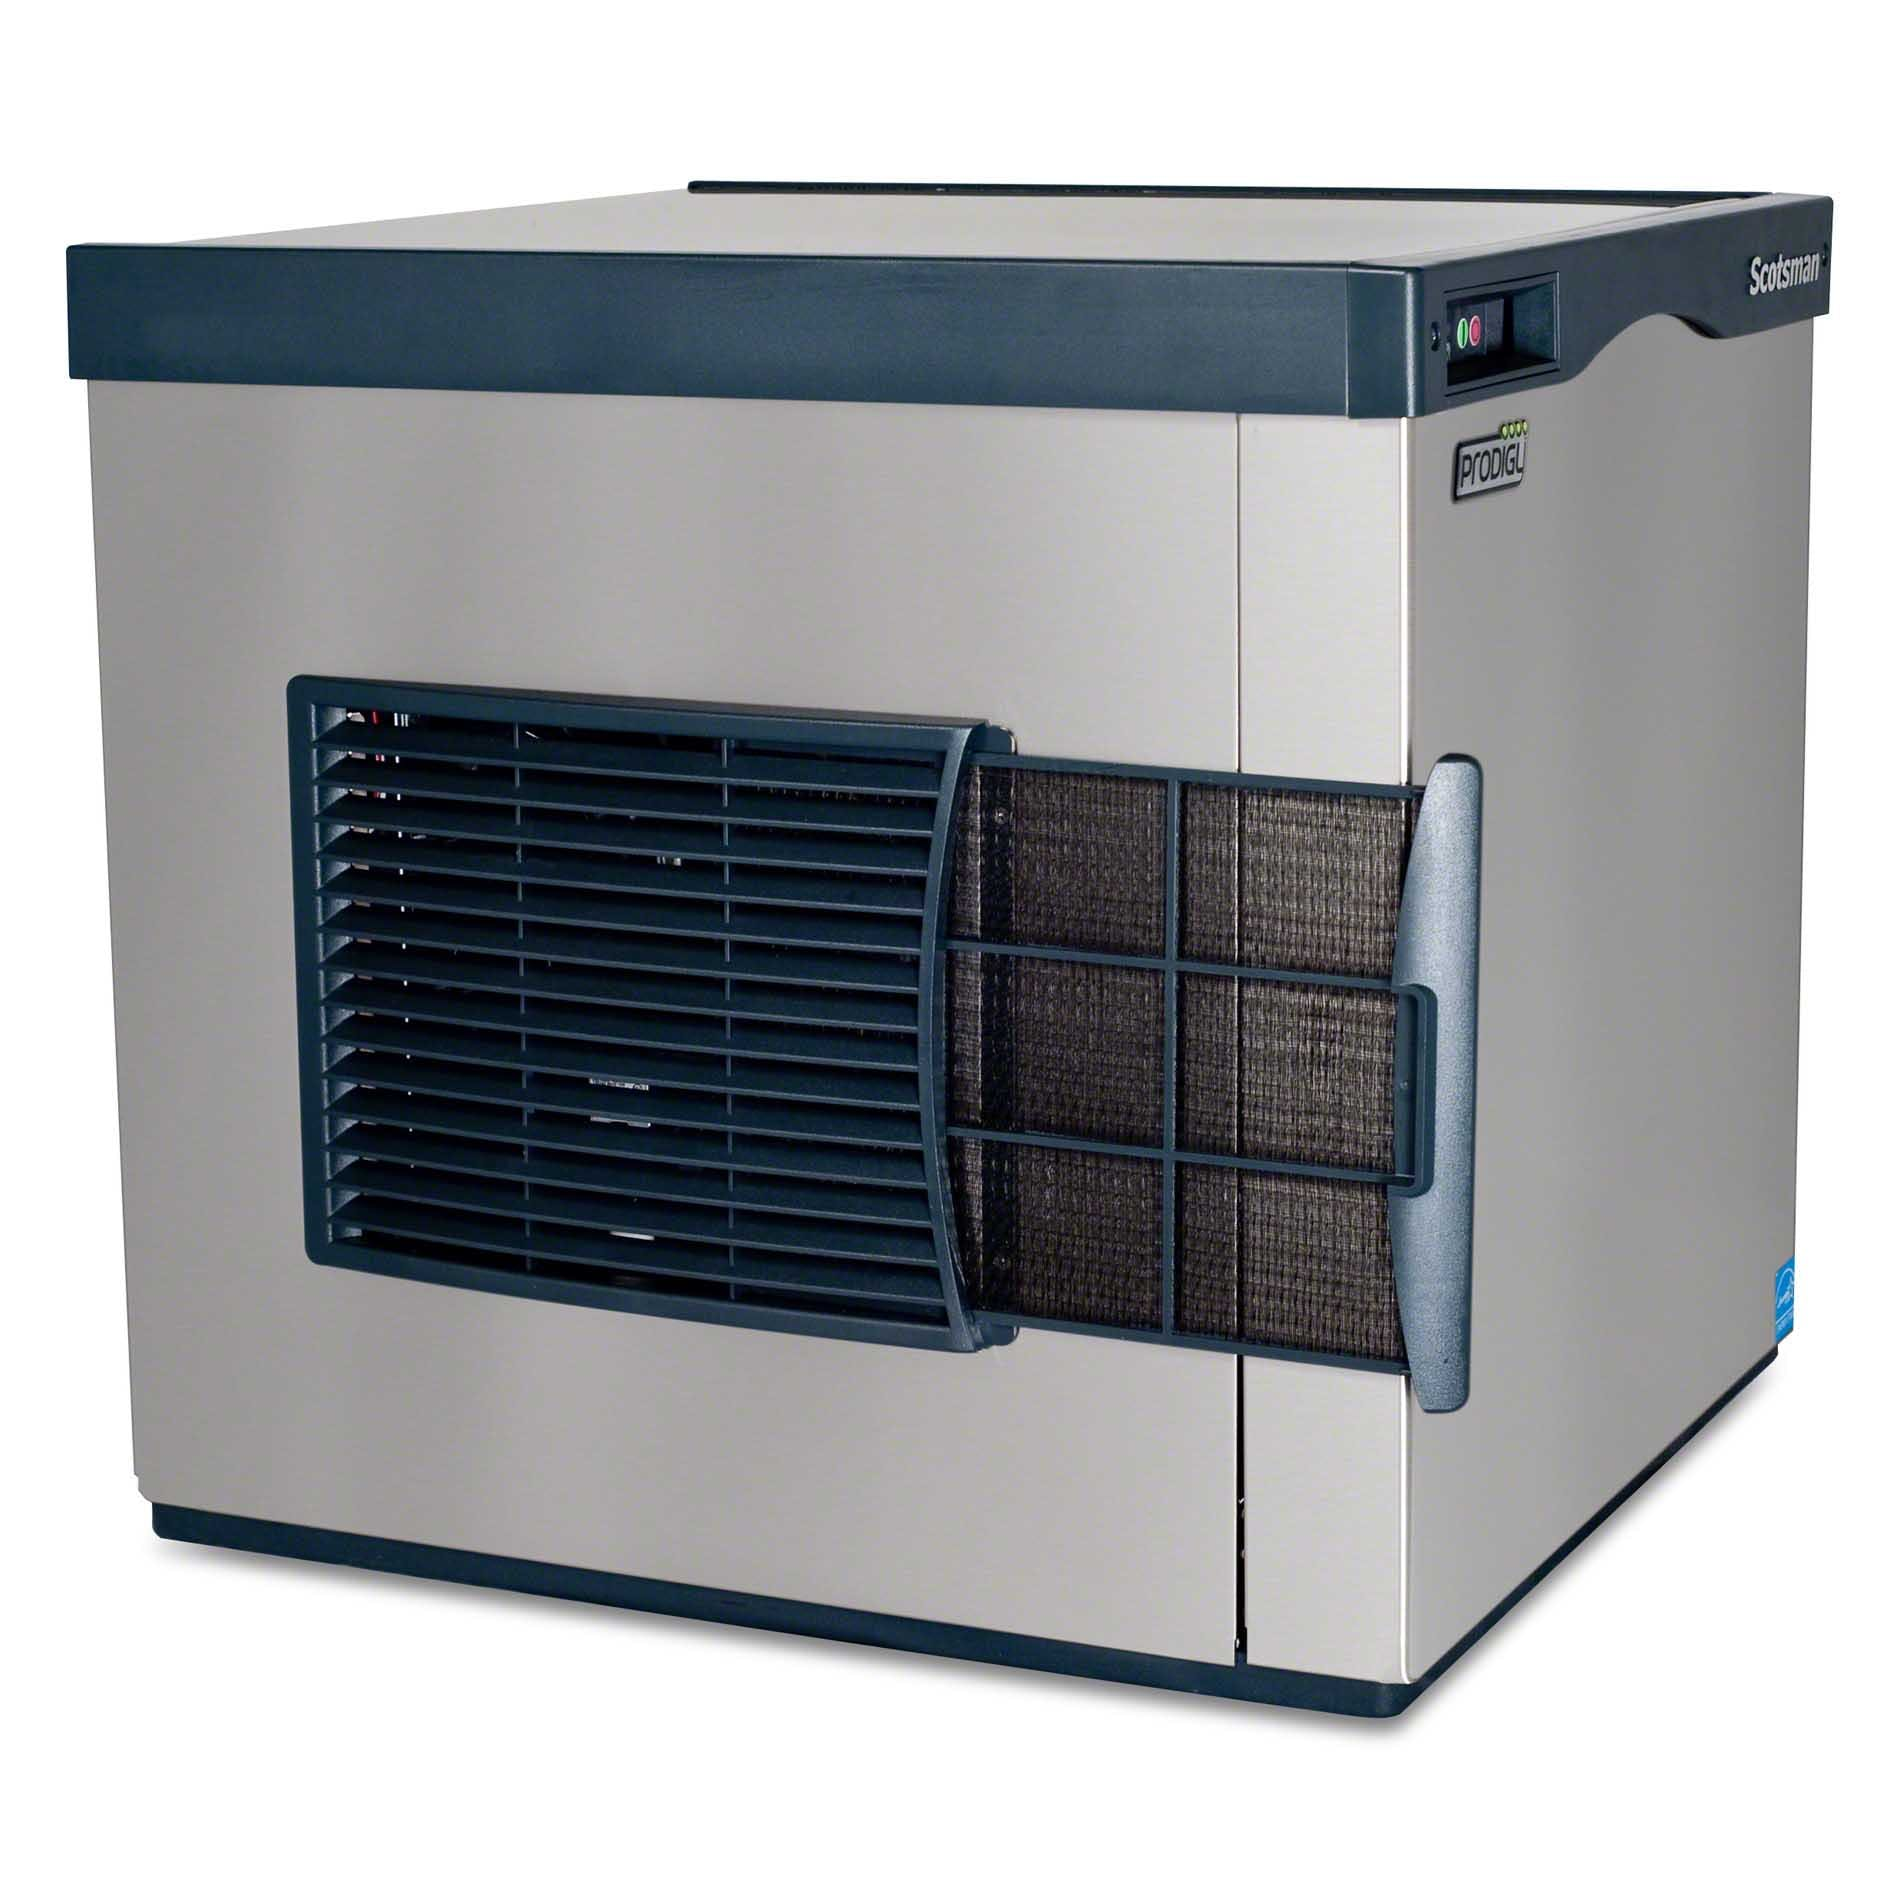 Scotsman - C0522MA-1A 475 lb Full Size Cube Ice Machine - Prodigy Series Ice machine sold by Food Service Warehouse